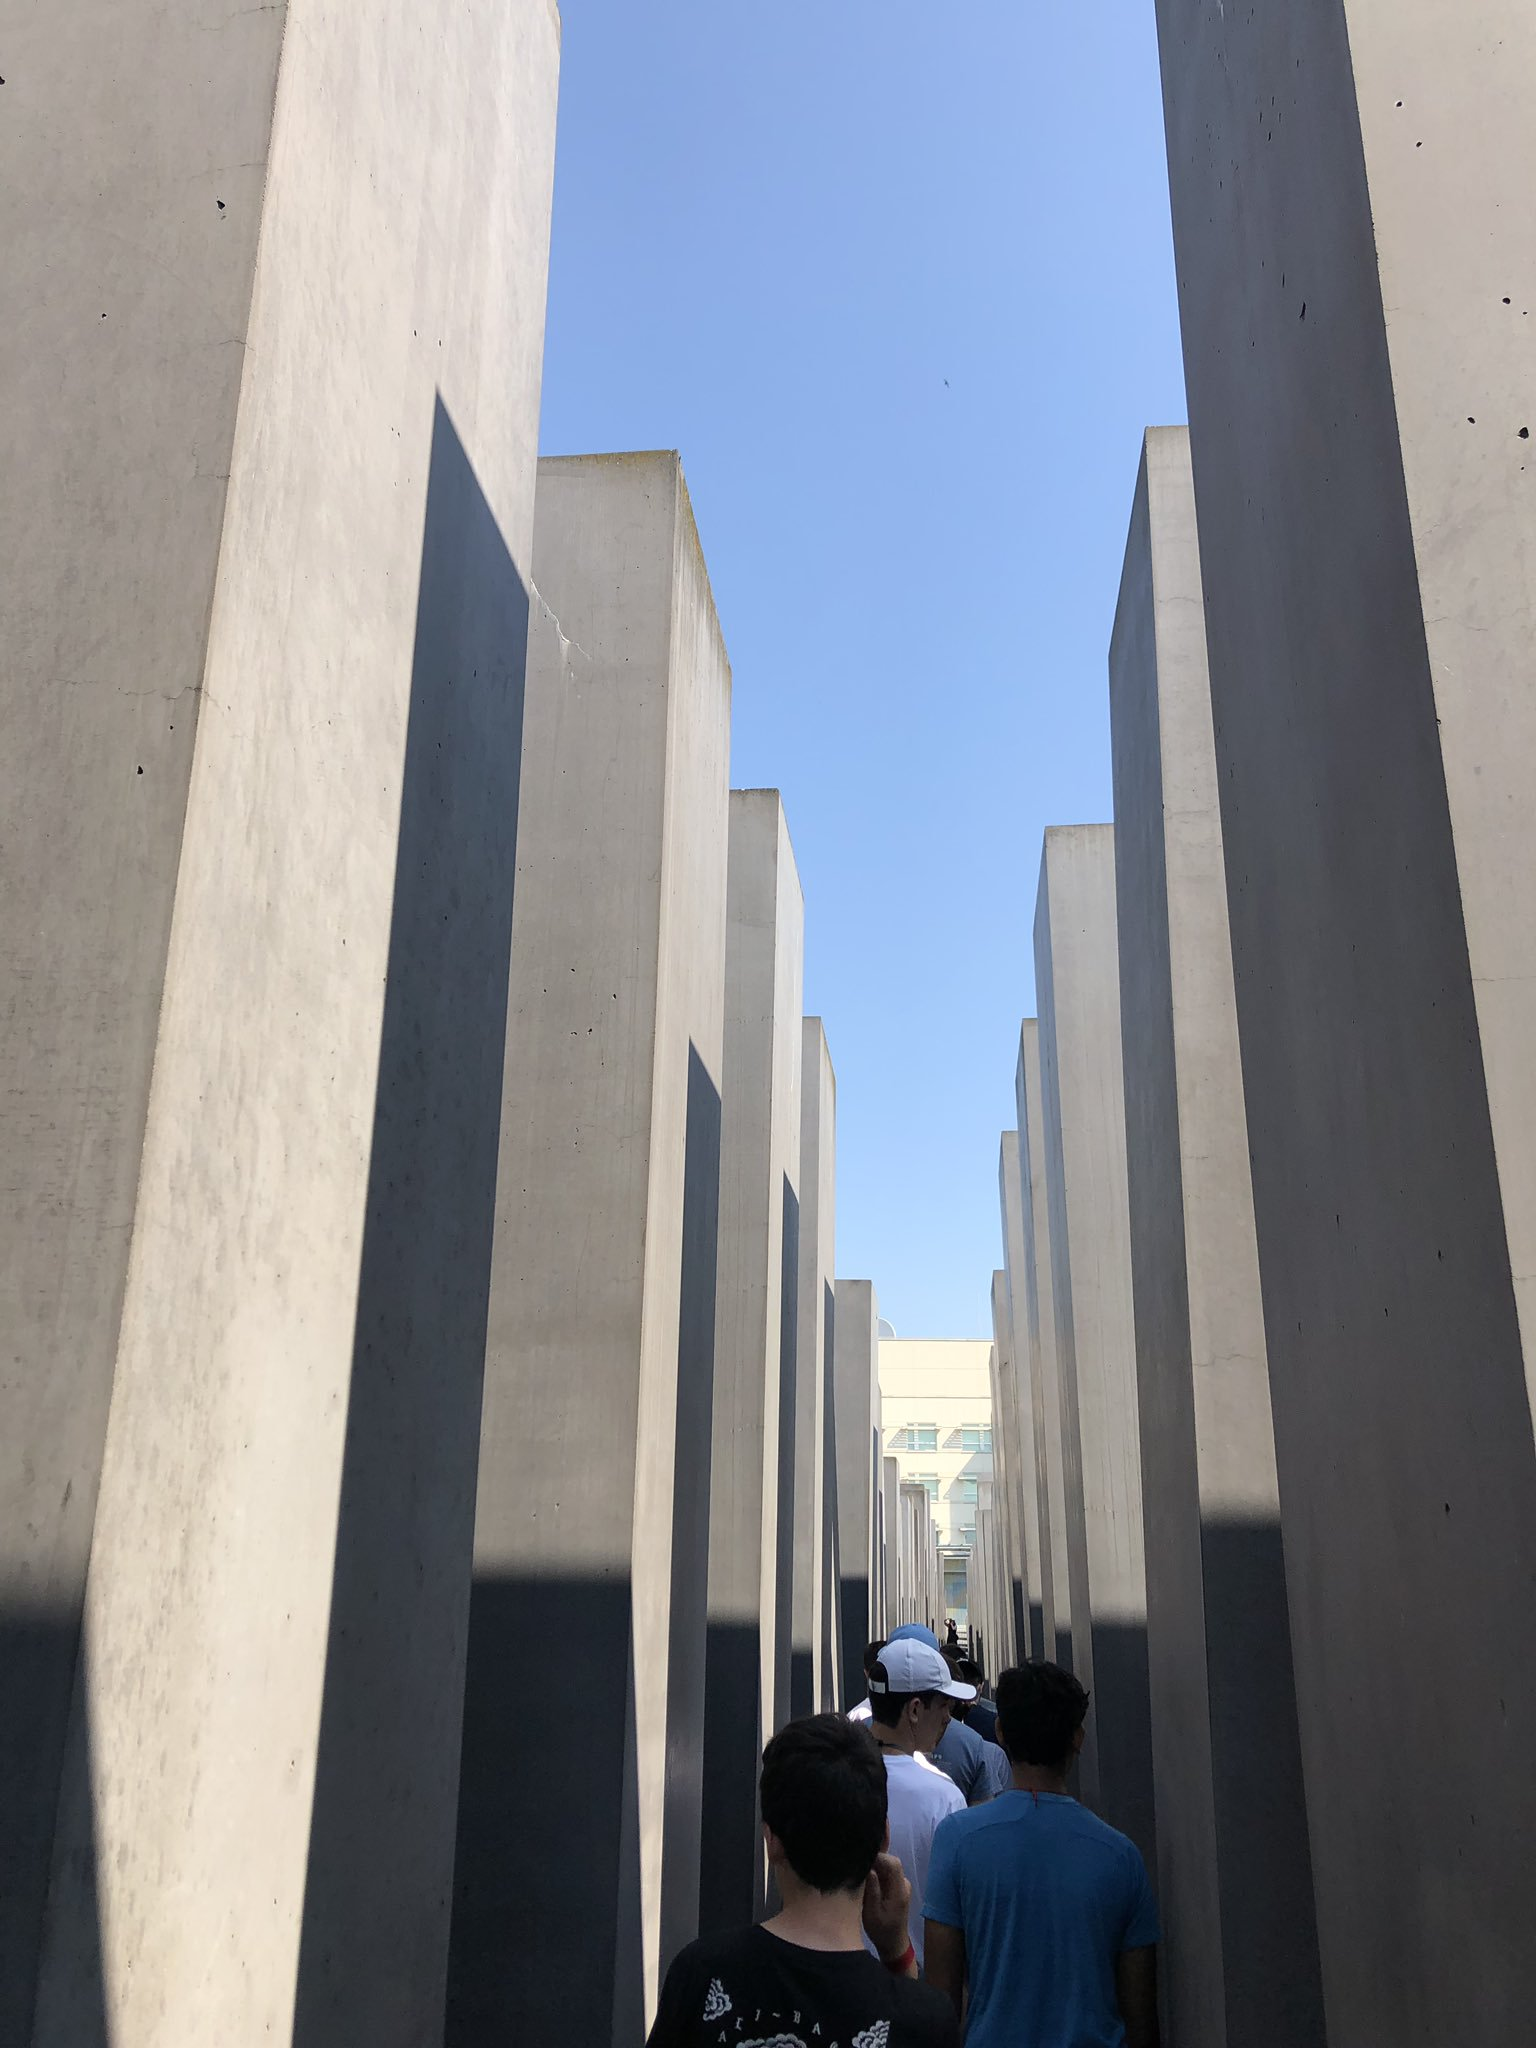 The 2019 Hermits European Educational Tour navigates their way through Berlin's Holocaust Memorial in City Center.  The moving experience was enhanced by the challenge posed by teachers to navigate the labyrinth while being mindful of the thoughts and feelings that came to mind: disorienting, claustrophobic, humbling. The moment has stayed with the students to this very day.